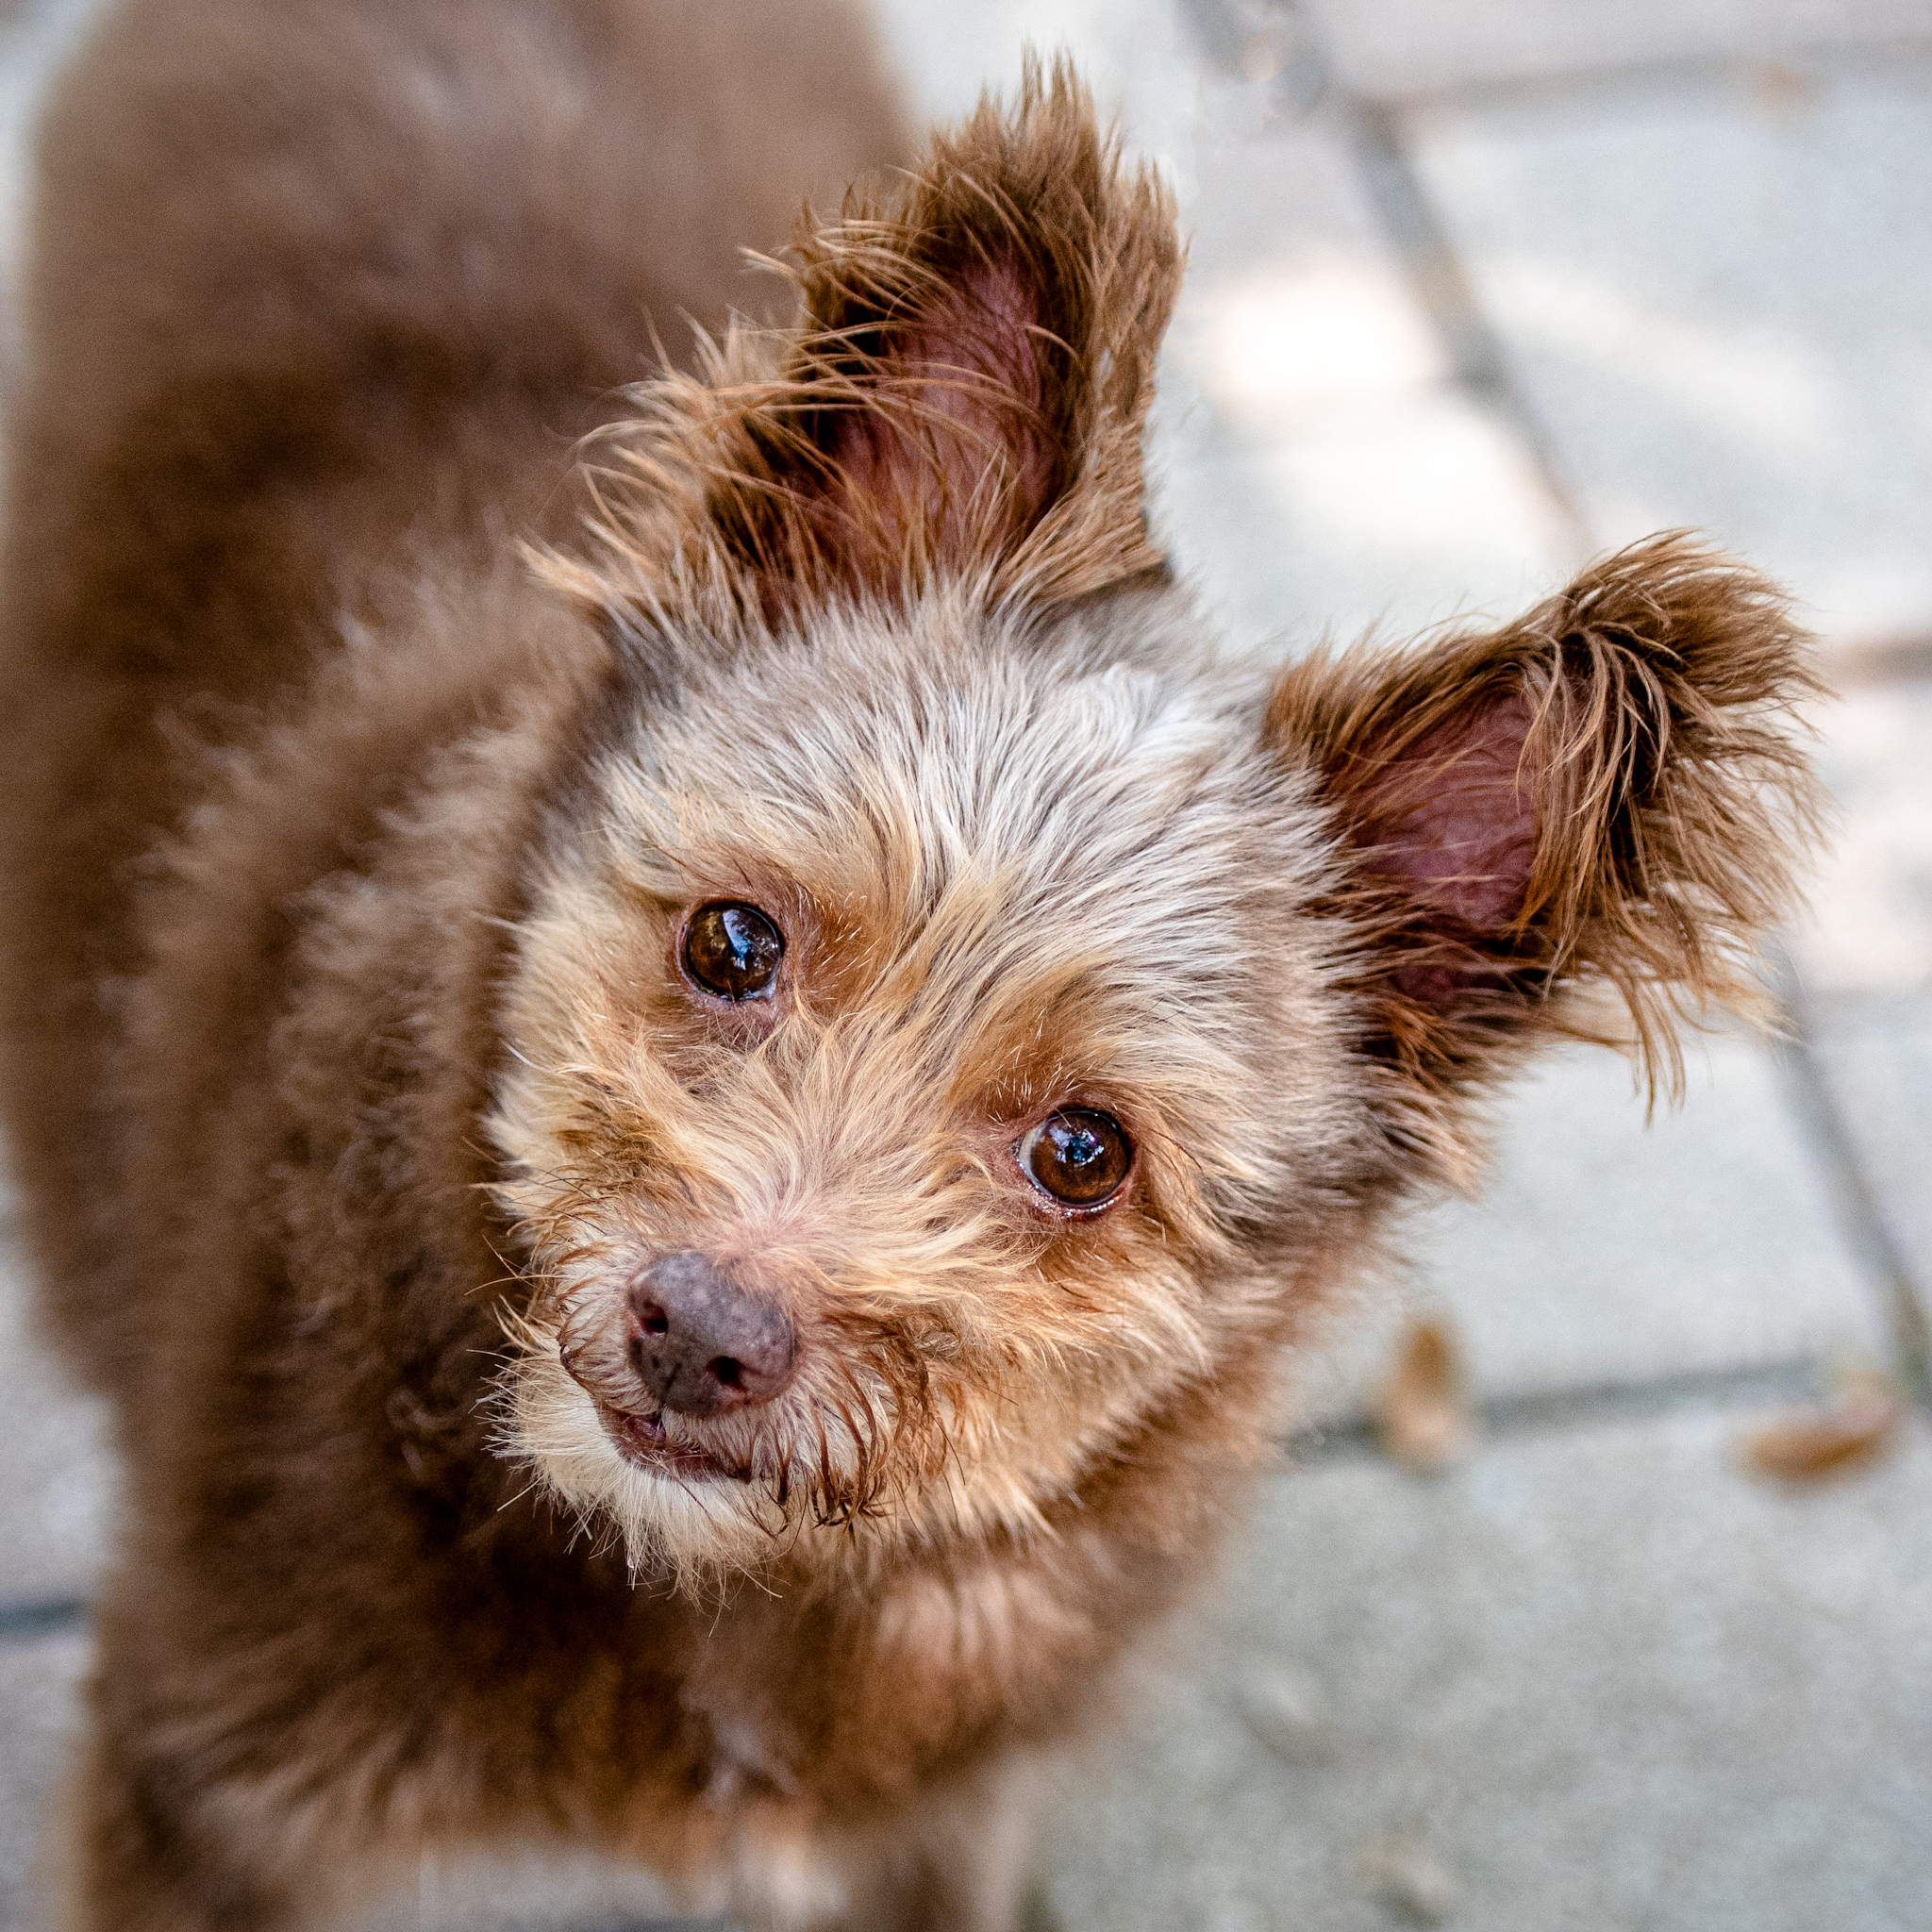 A small brown fuzzy dog with pointy ears.